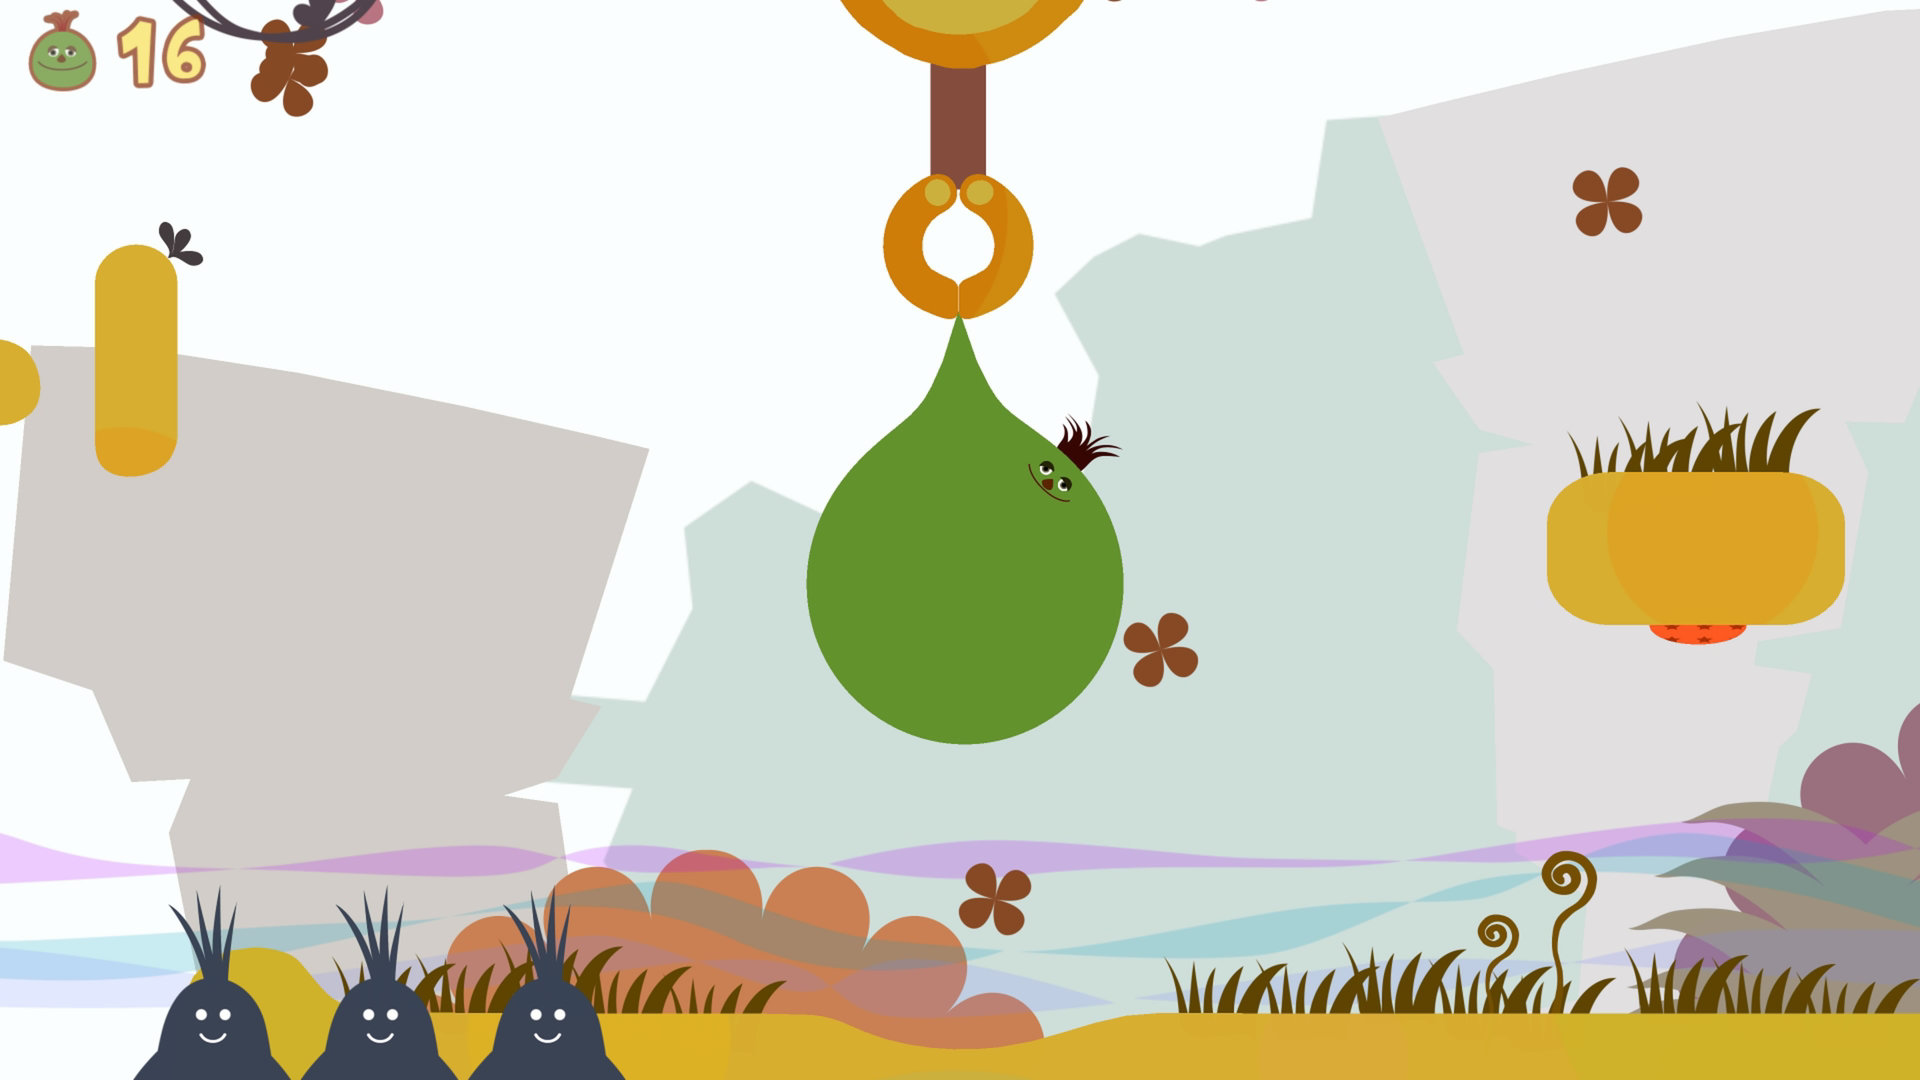 locoroco-screen-09-ps4-eu-26apr17